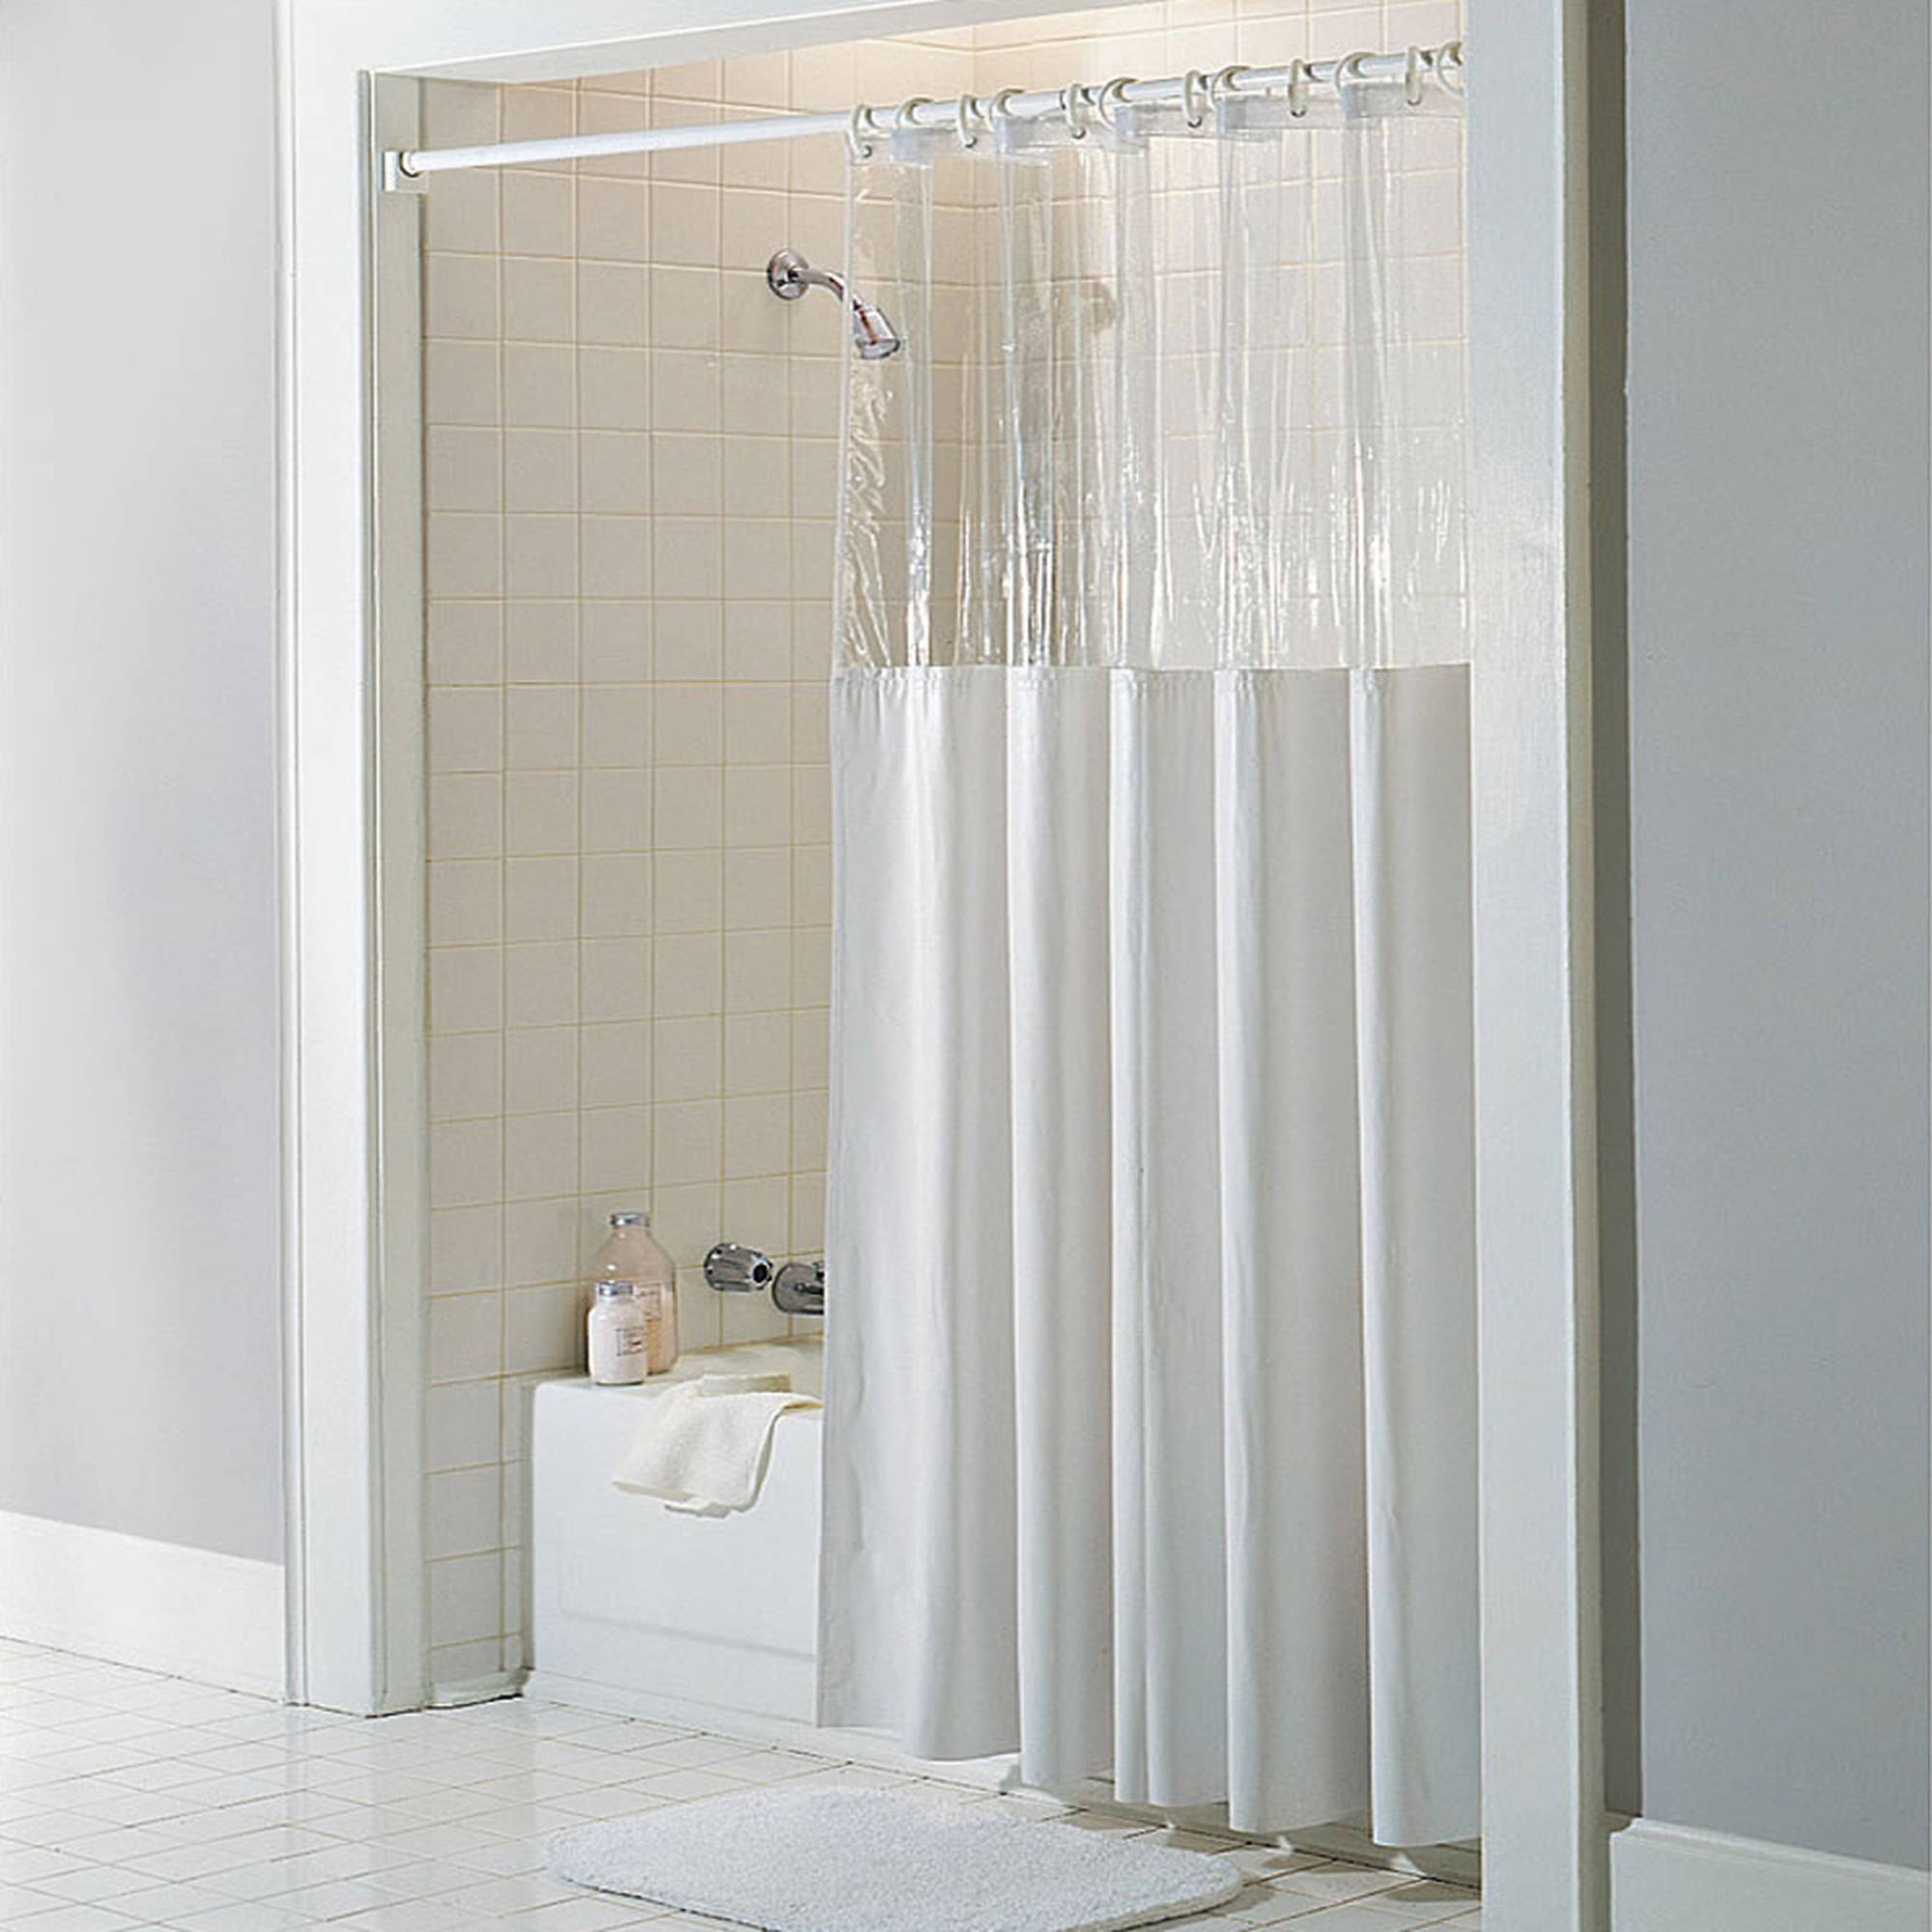 See Through Top Clearwhite Vinyl Bath Shower Curtain 72 X Inside Proportions 2000